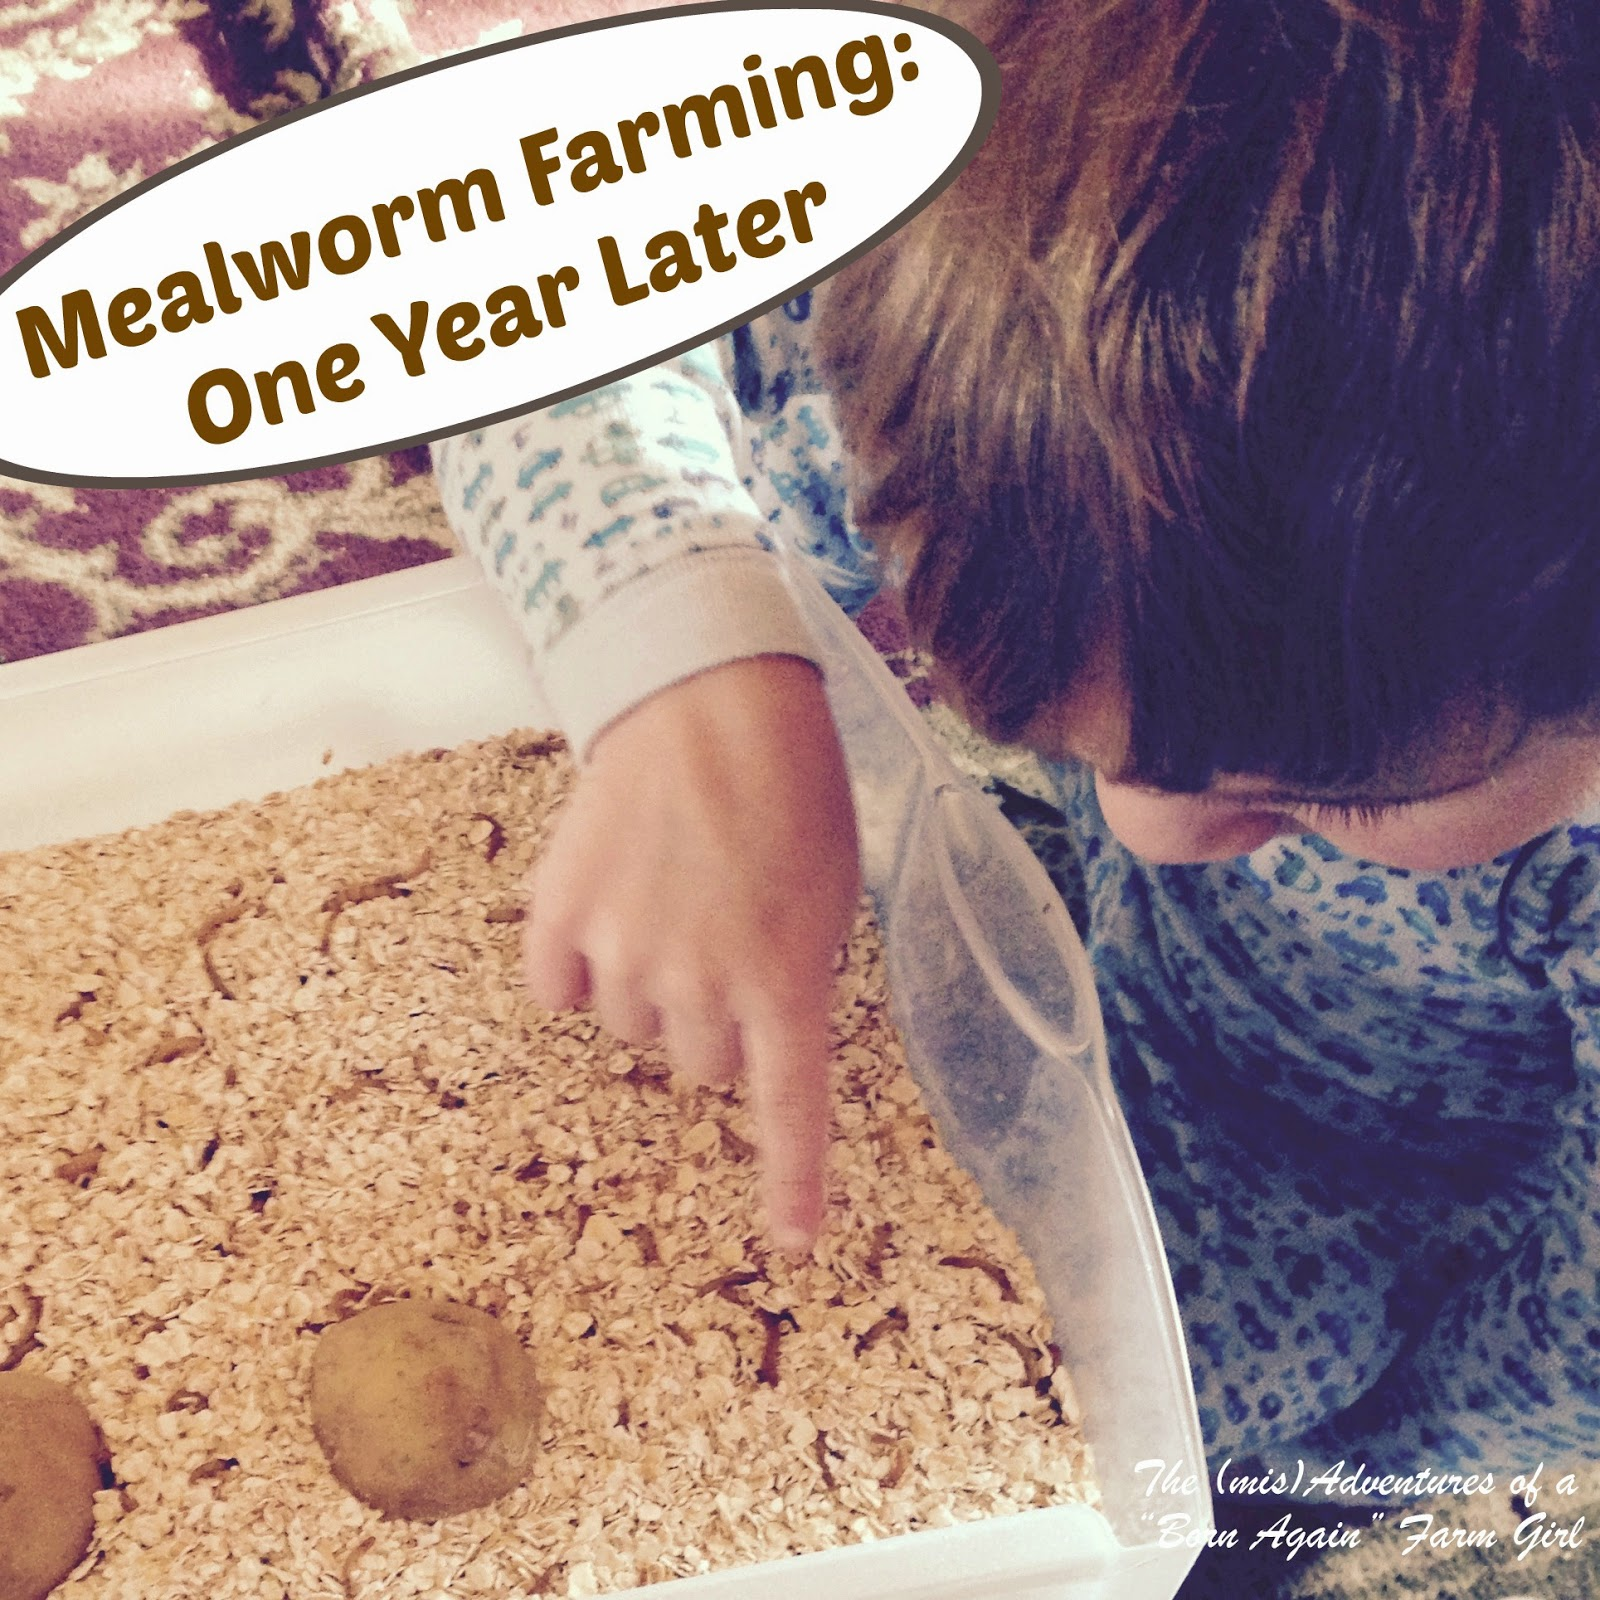 Mealworm Farming: One Year Later